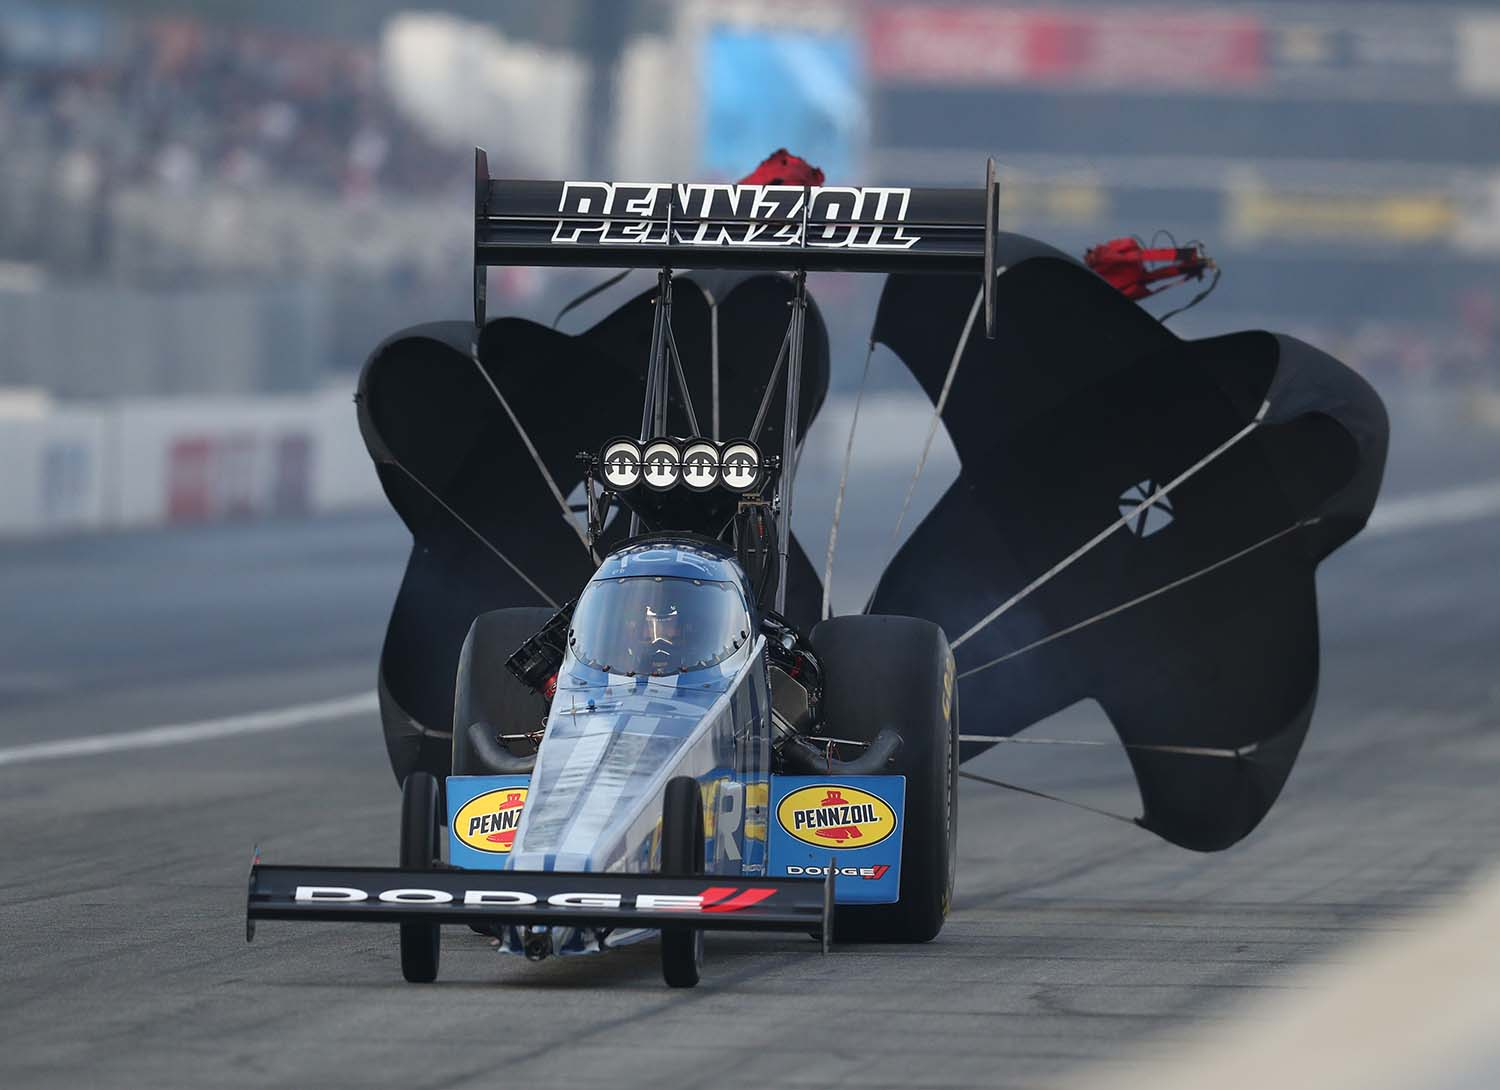 Leah will start from the No. 2 spot on the Top Fuel ladder as she seeks to maintain her 'top five' ranking